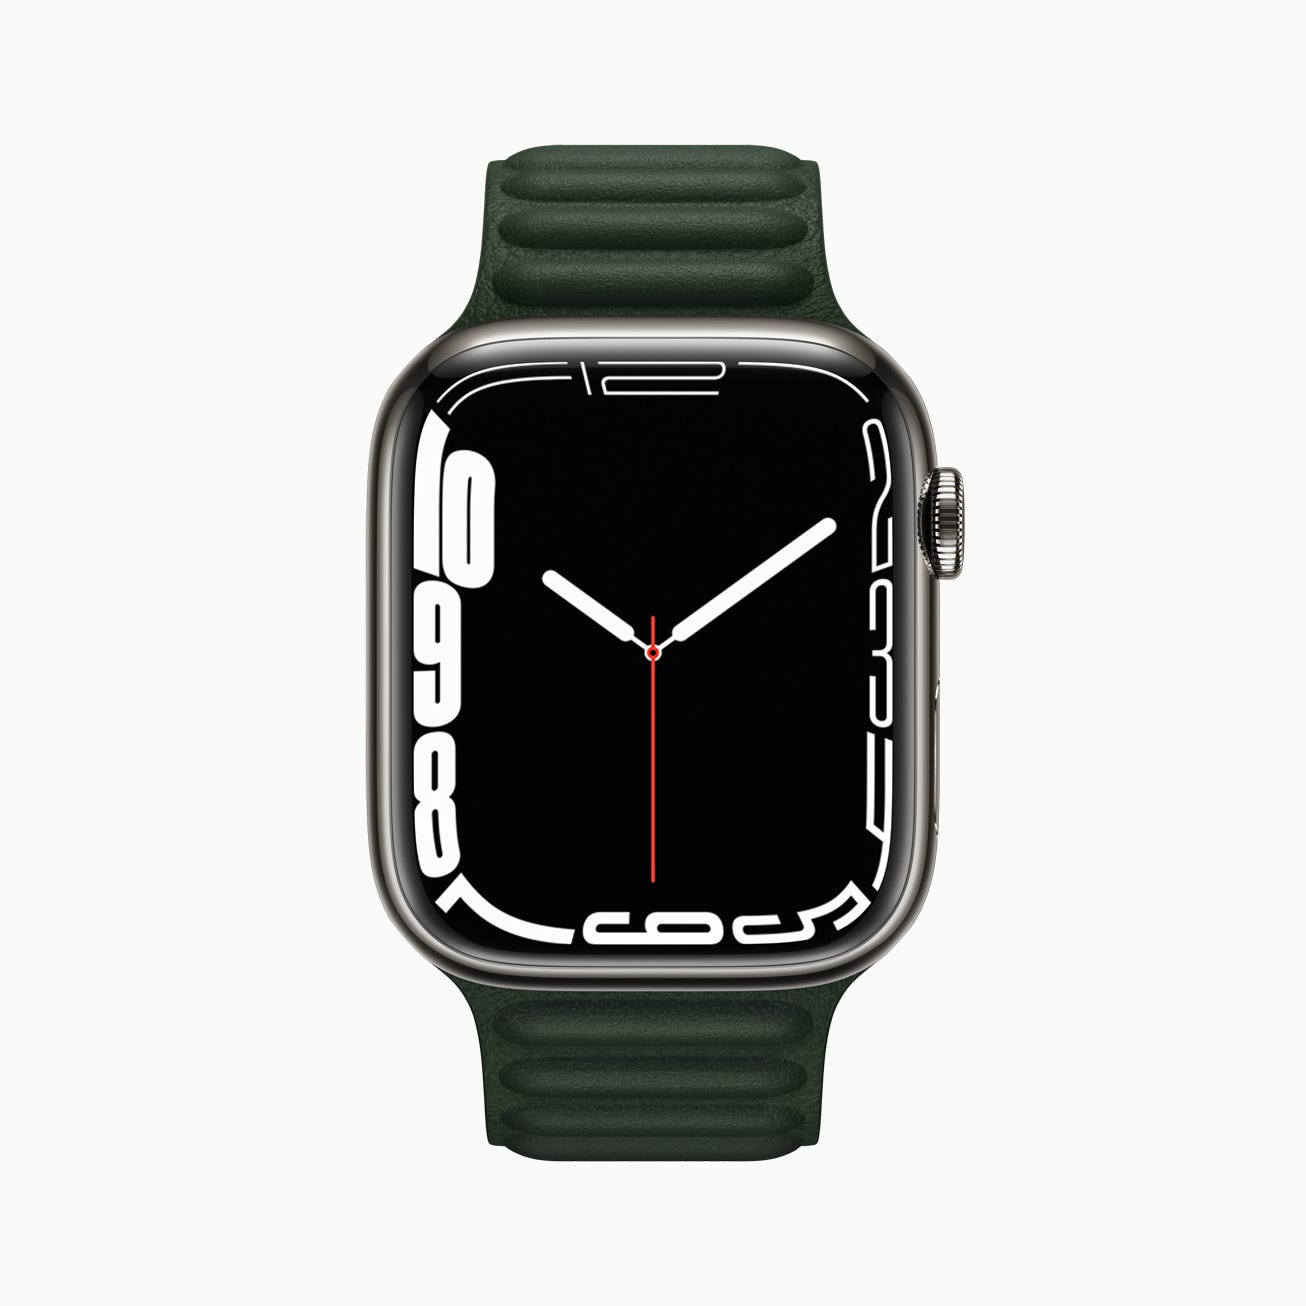 Apple Watch Series 7: New model with larger, more durable display — time for an upgrade?